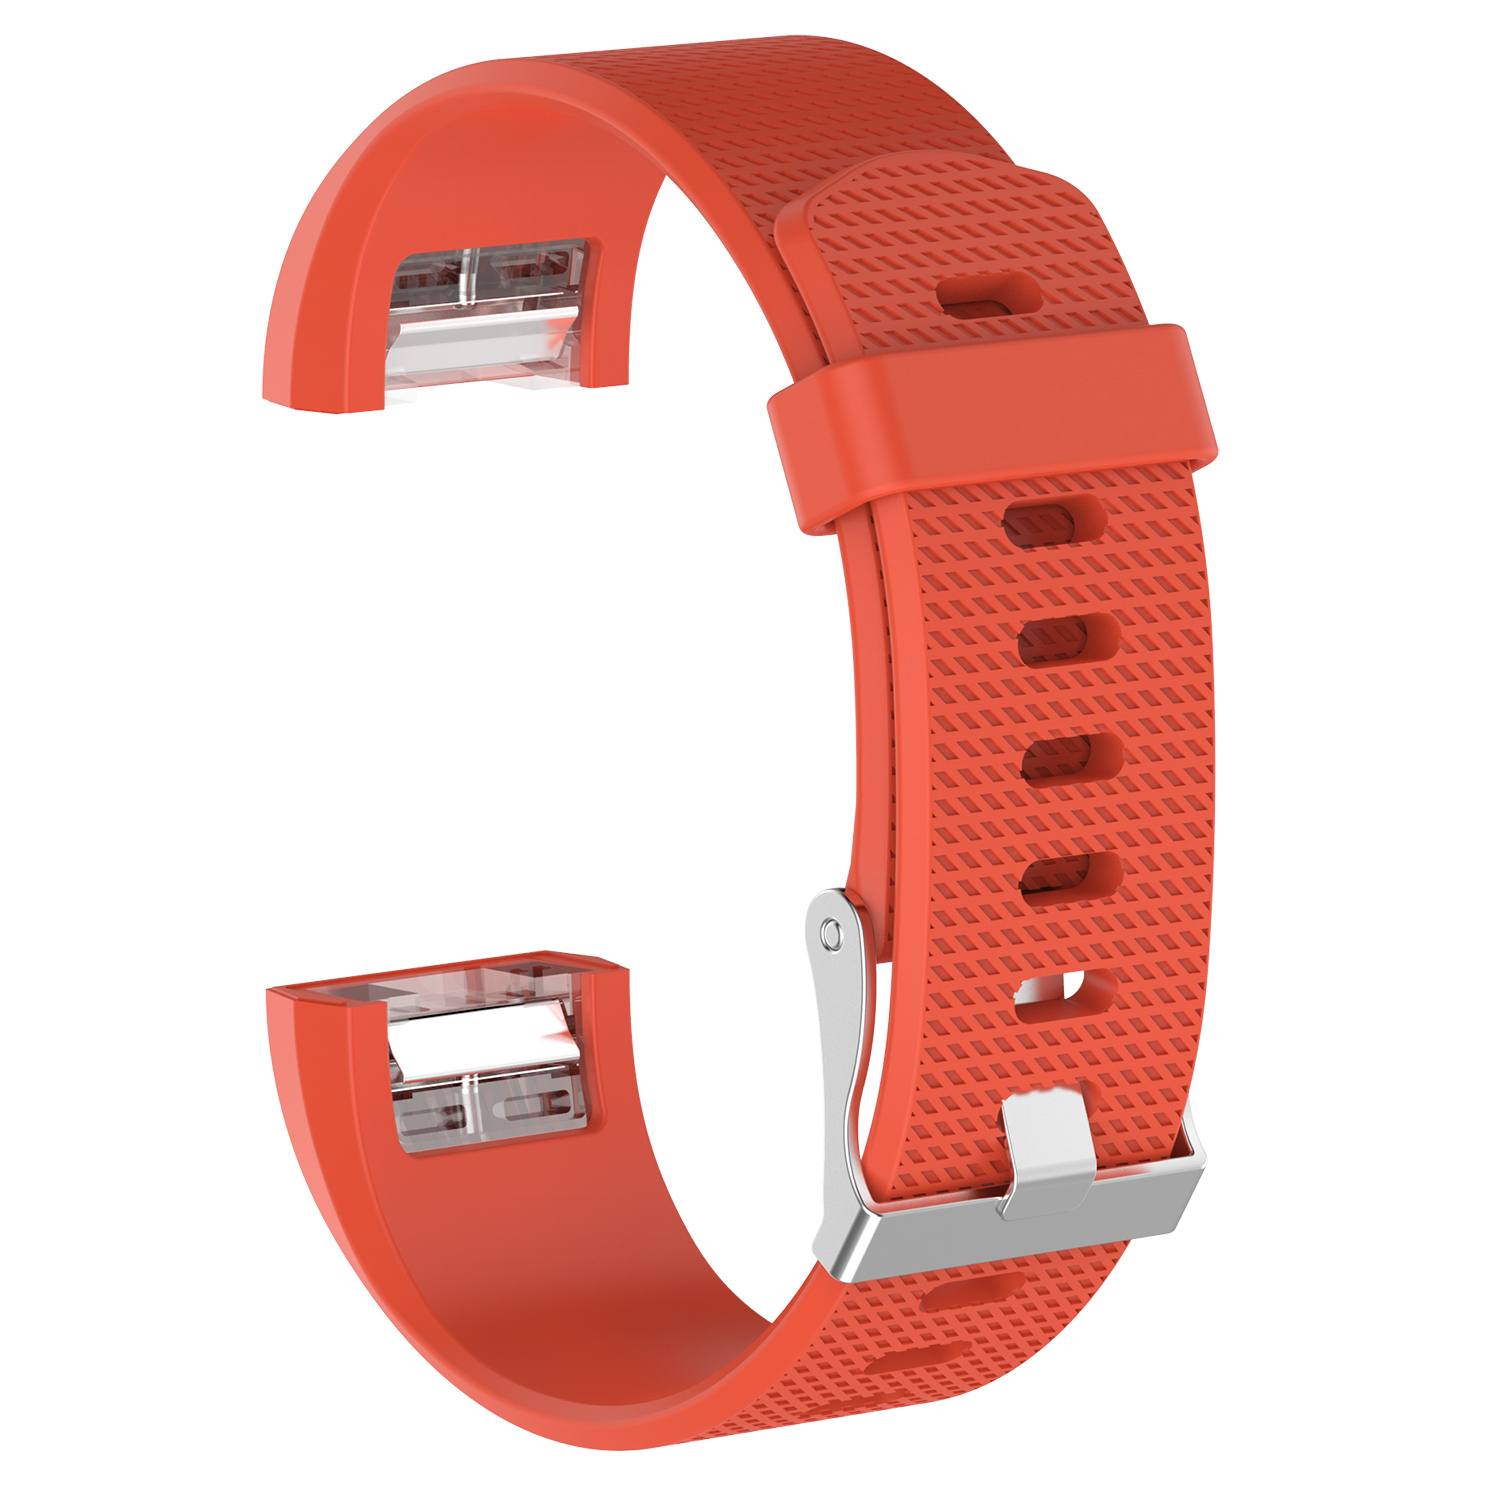 Replacement-Silicone-Wristband-Watch-Strap-Bands-Bracelet-For-Fitbit-Charge-2 thumbnail 42